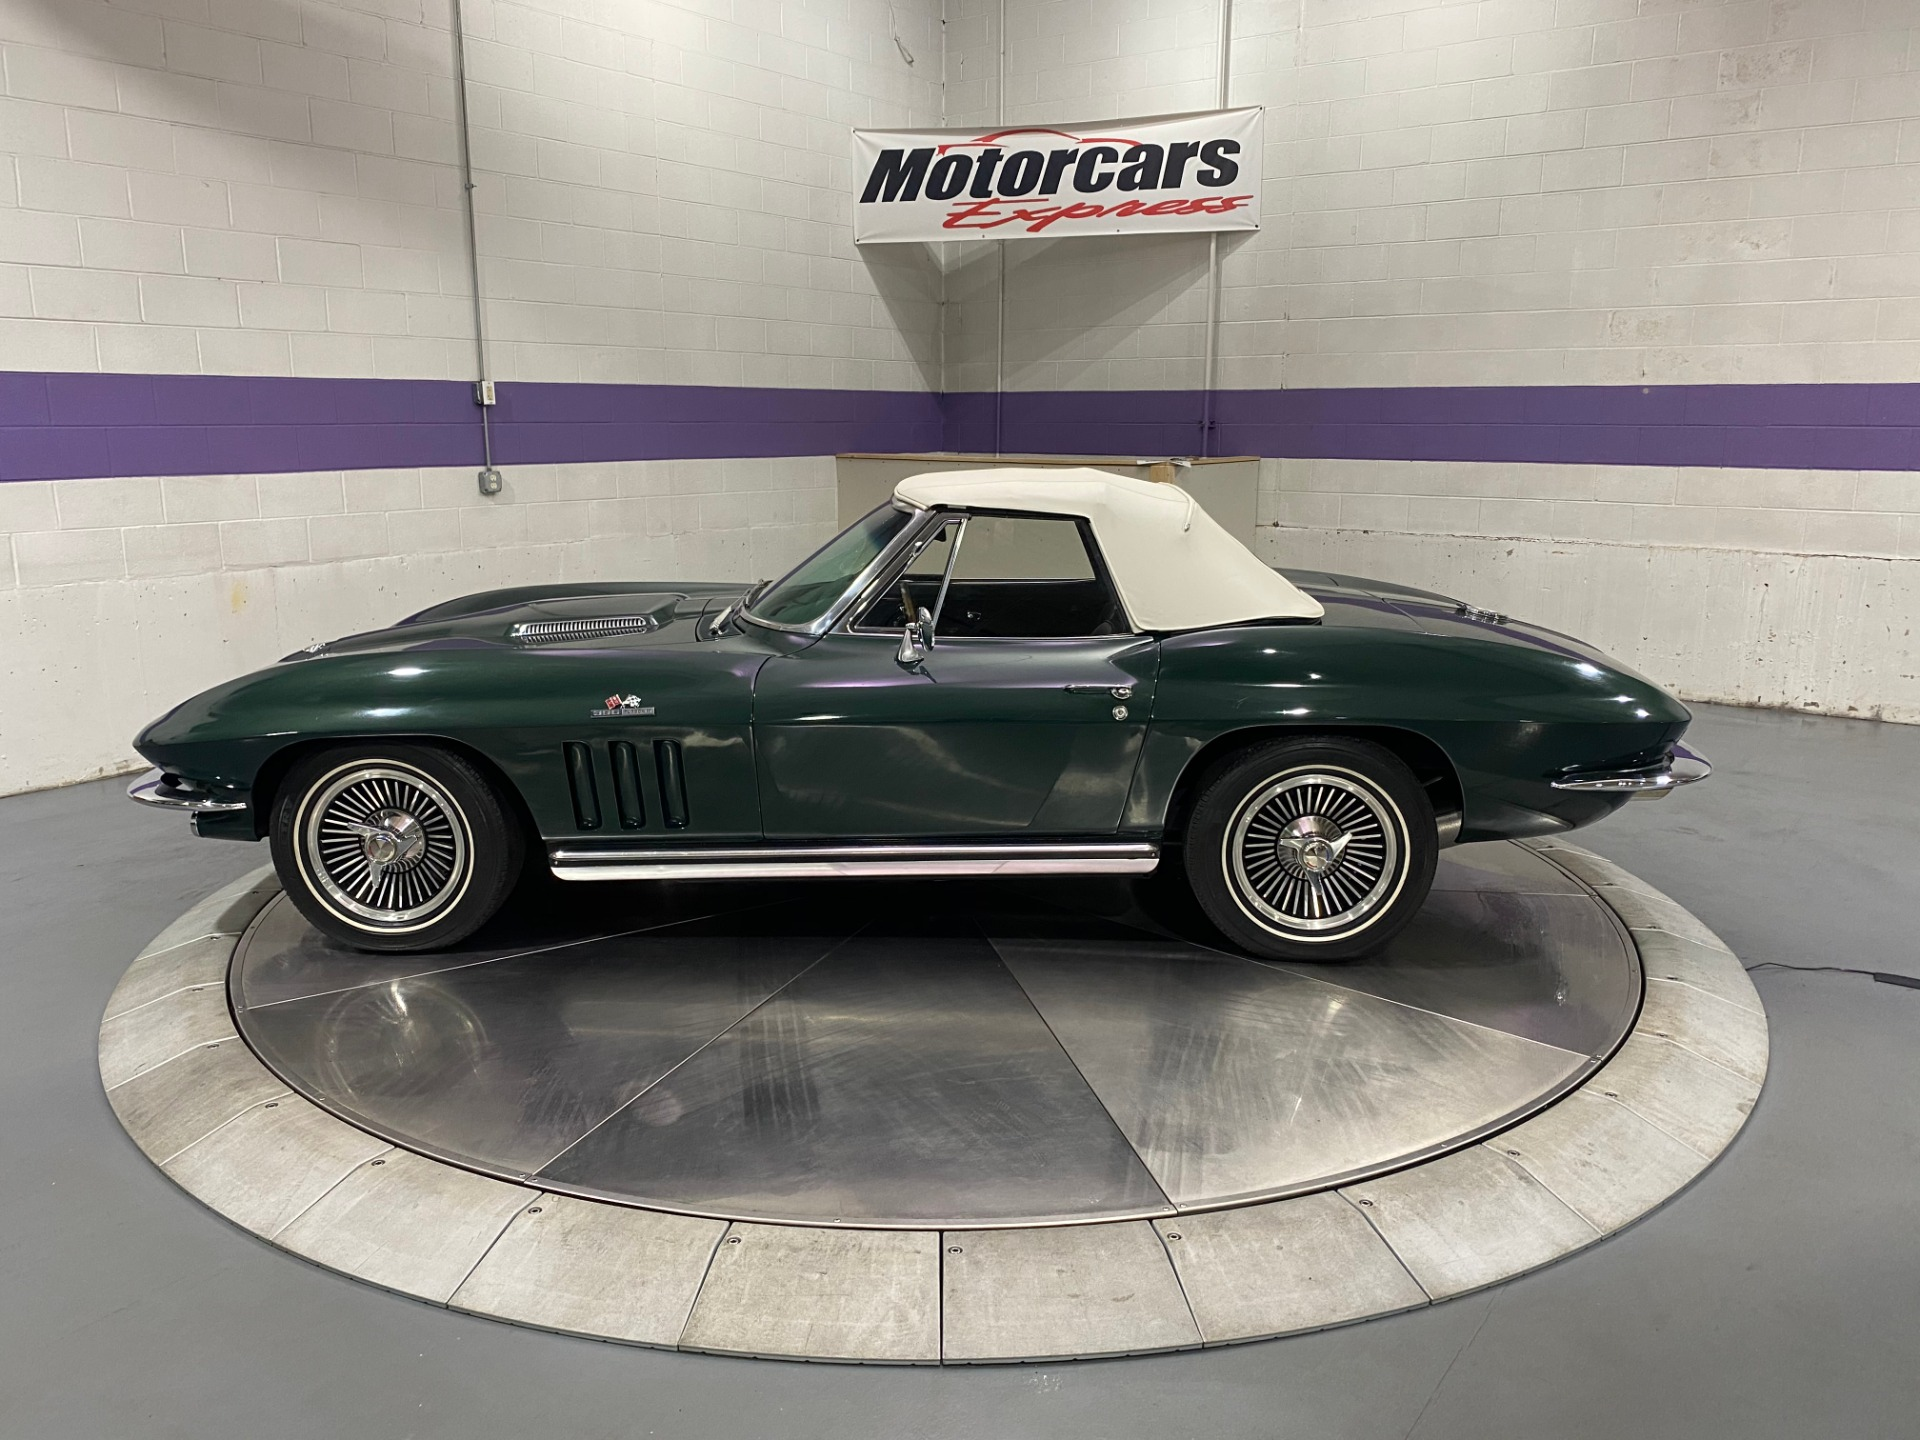 Used-1965-Chevy-Corvette-Stingray-Convertible-396-Turbo-Jet-425Hp-Numbers-Matching